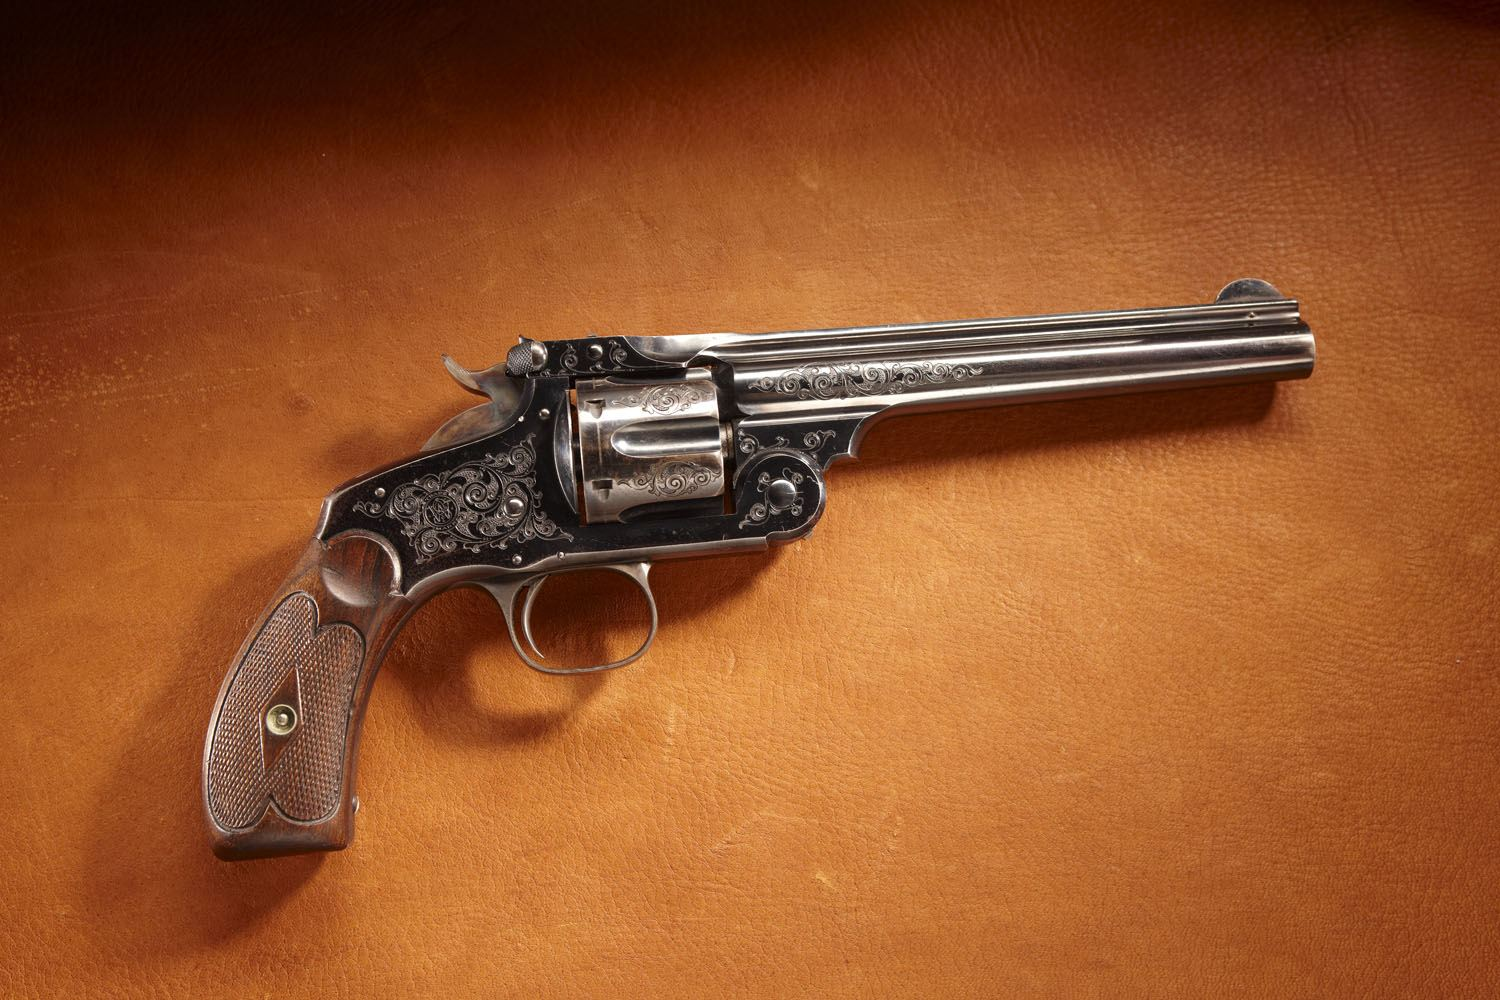 Theodore Roosevelt's Smith & Wesson New Model No. 3 Revolver